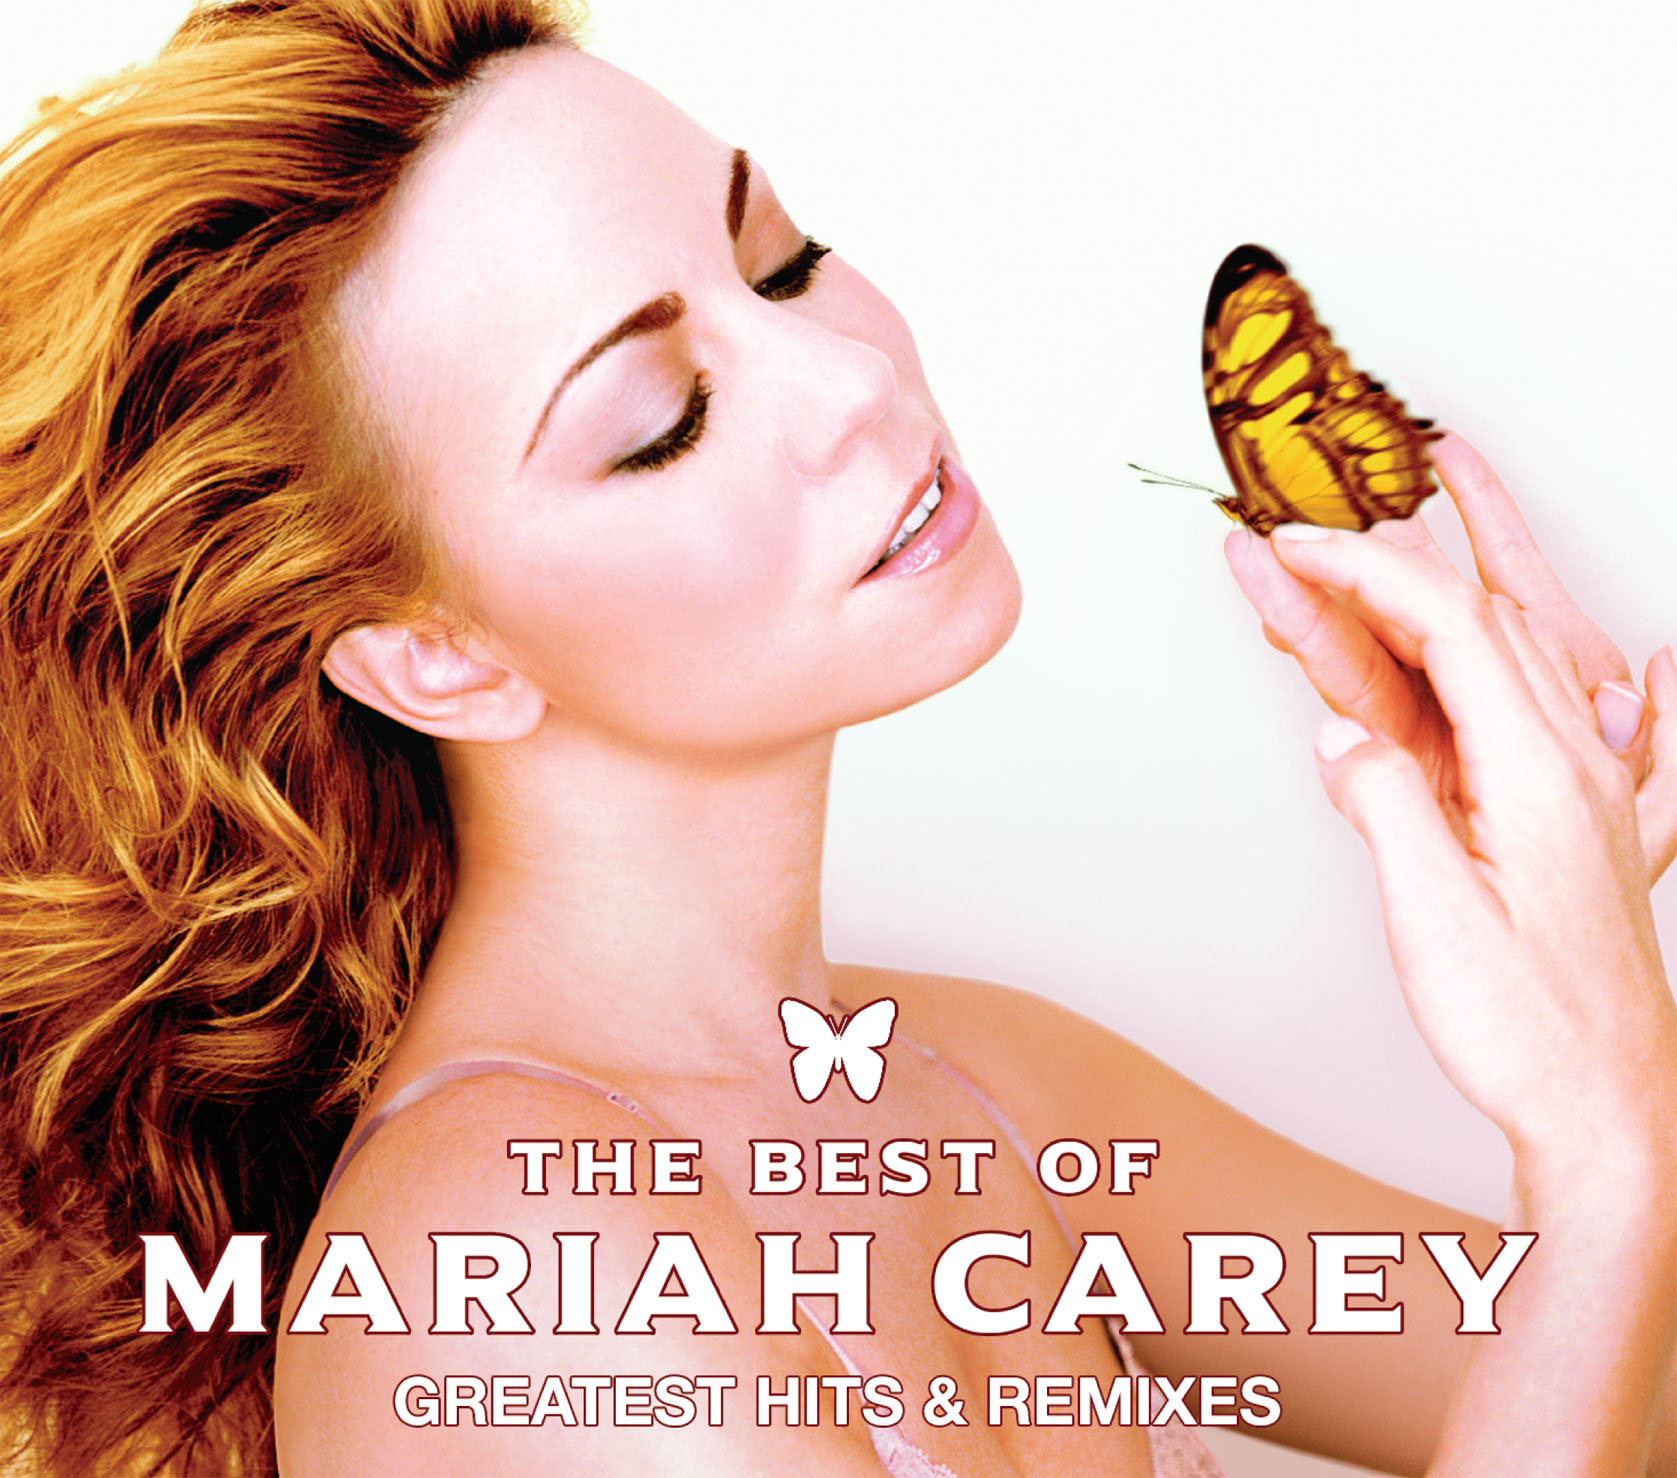 MariahCarey_Sticker